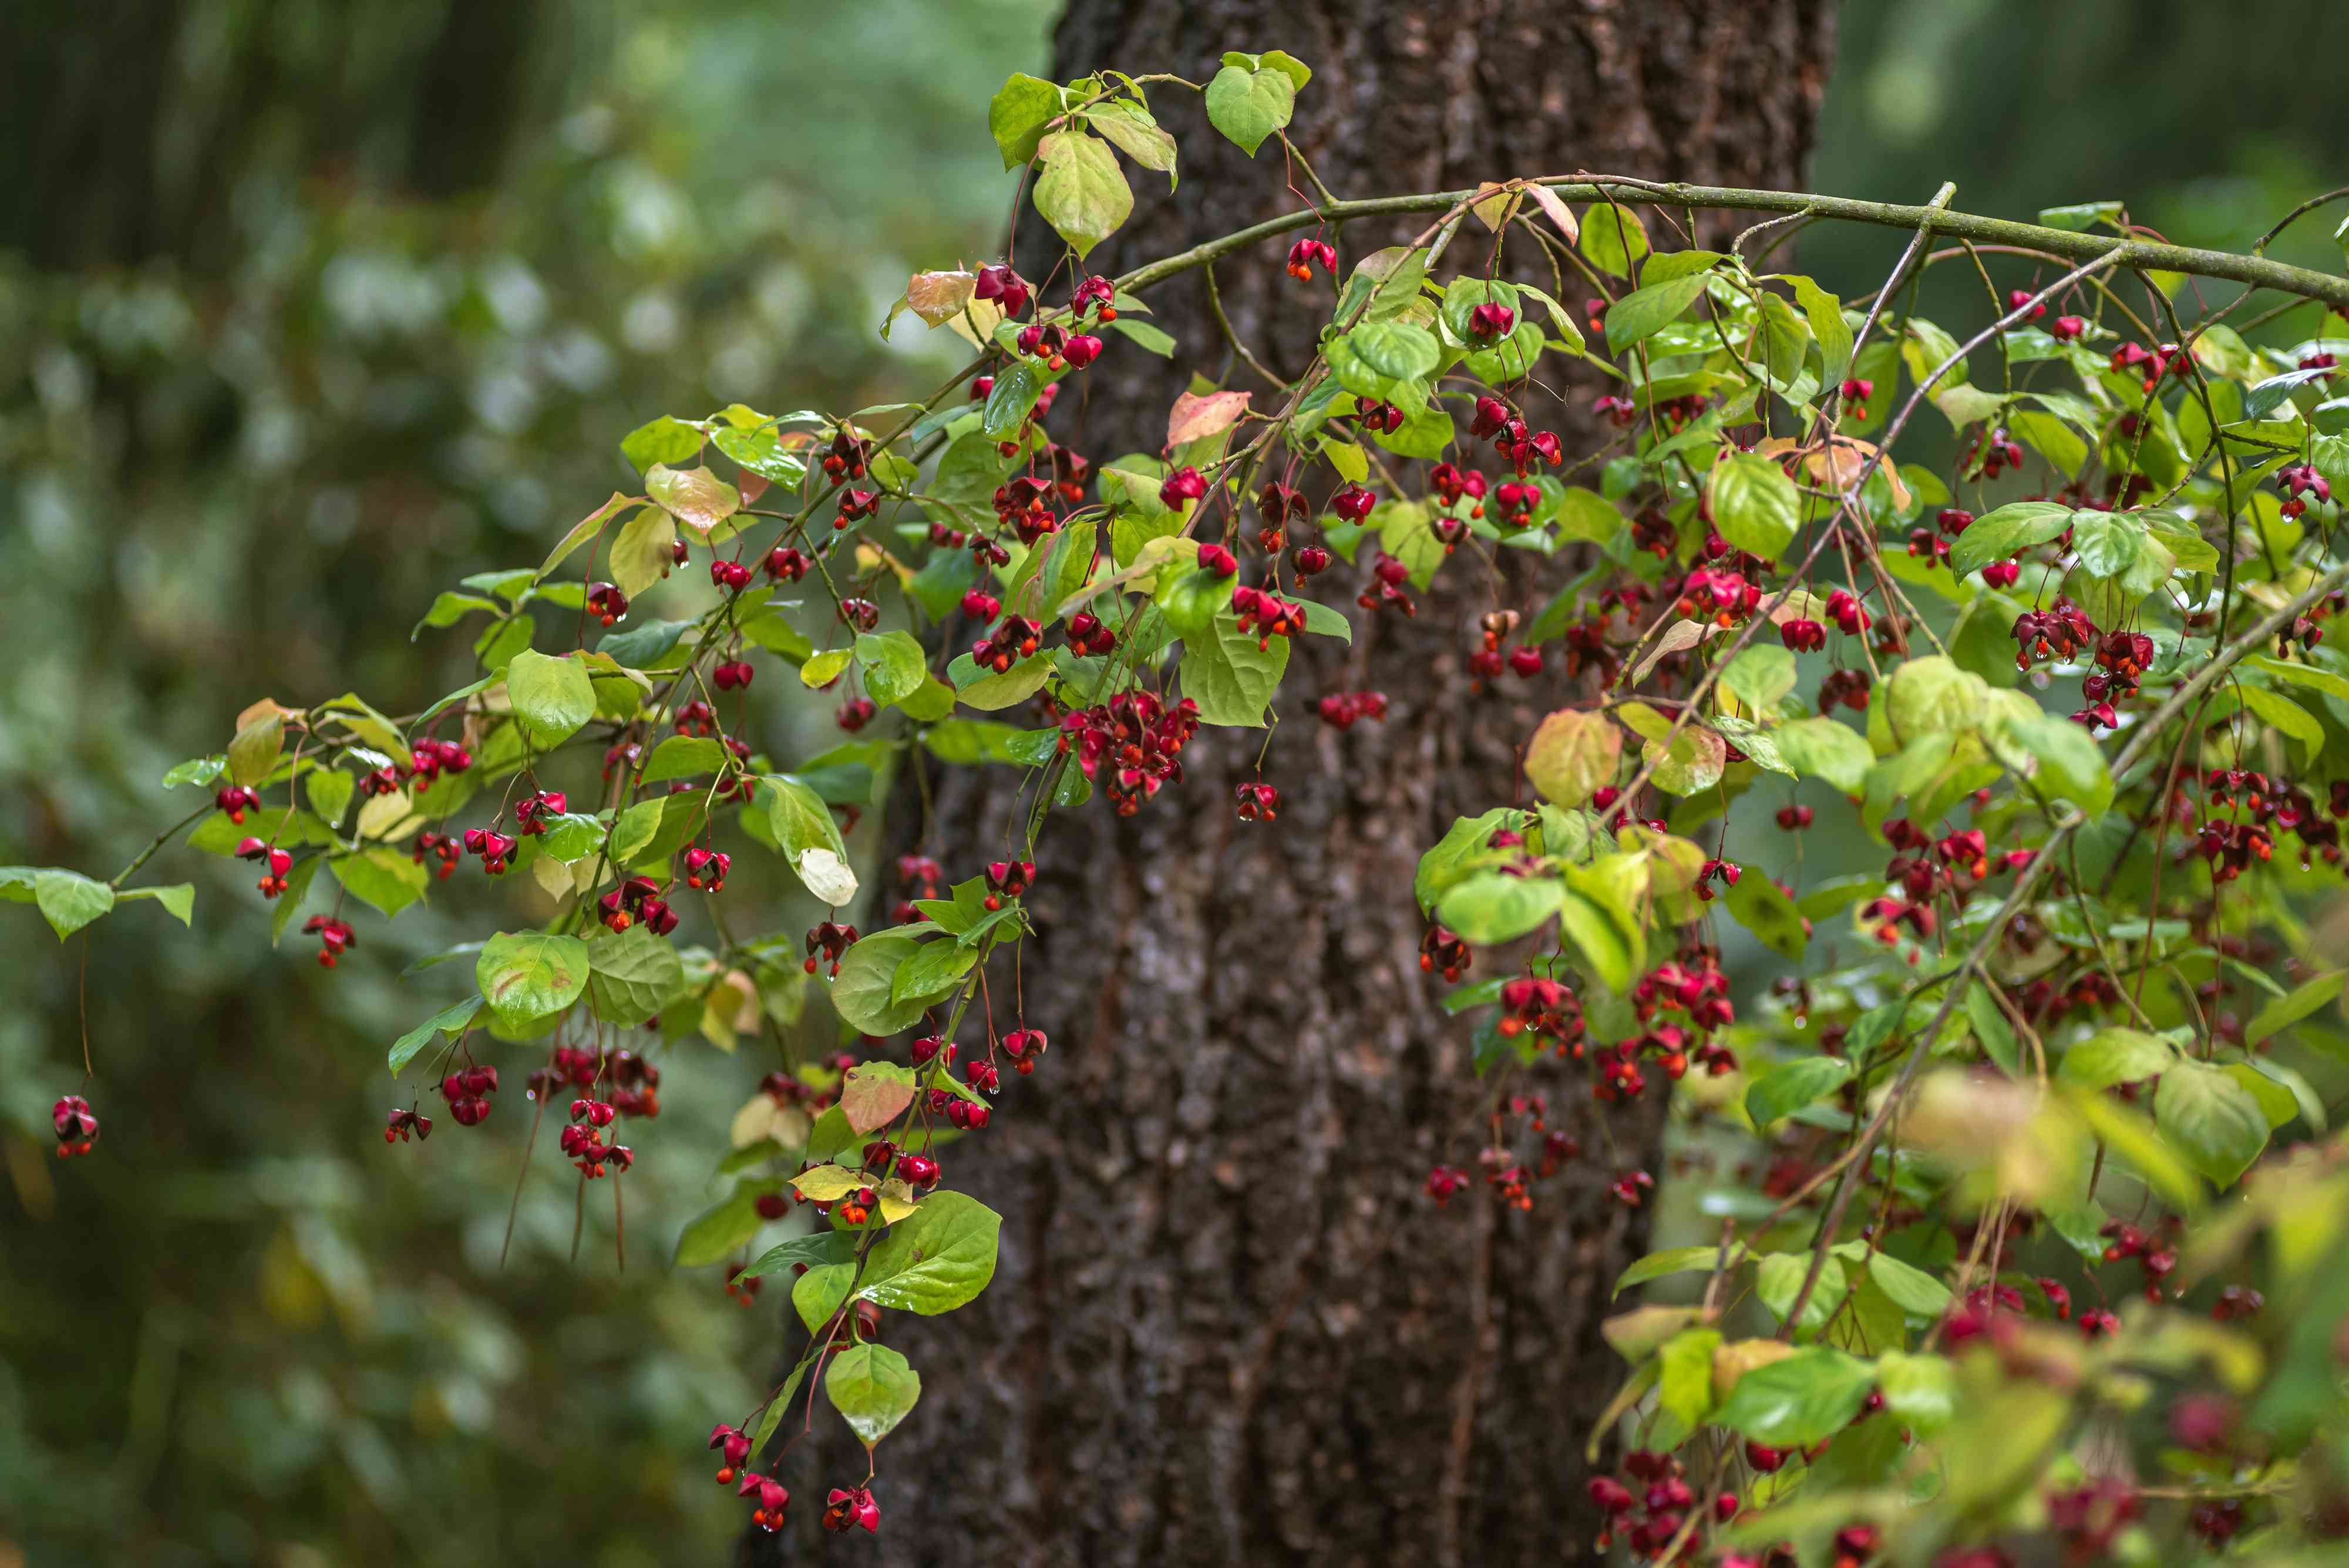 European spindle tree branch with fuchsia colored berries in front of tree trunk